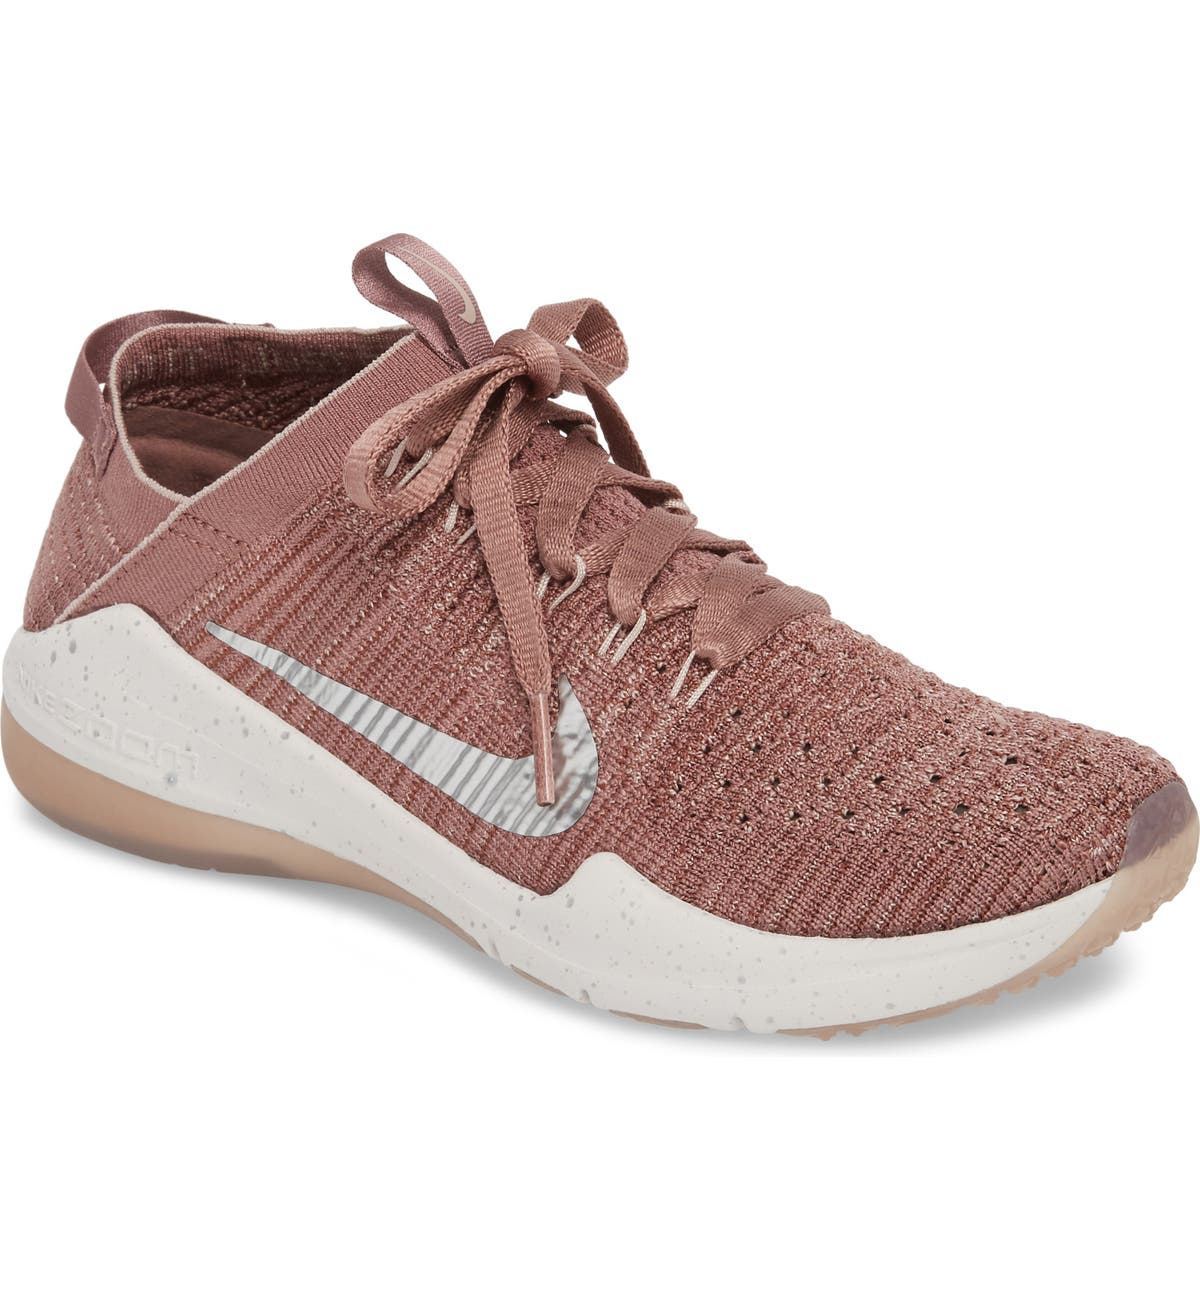 1c09197e54af8e Nike Air Zoom Fearless Flyknit 2 LM Training Shoe (Women)